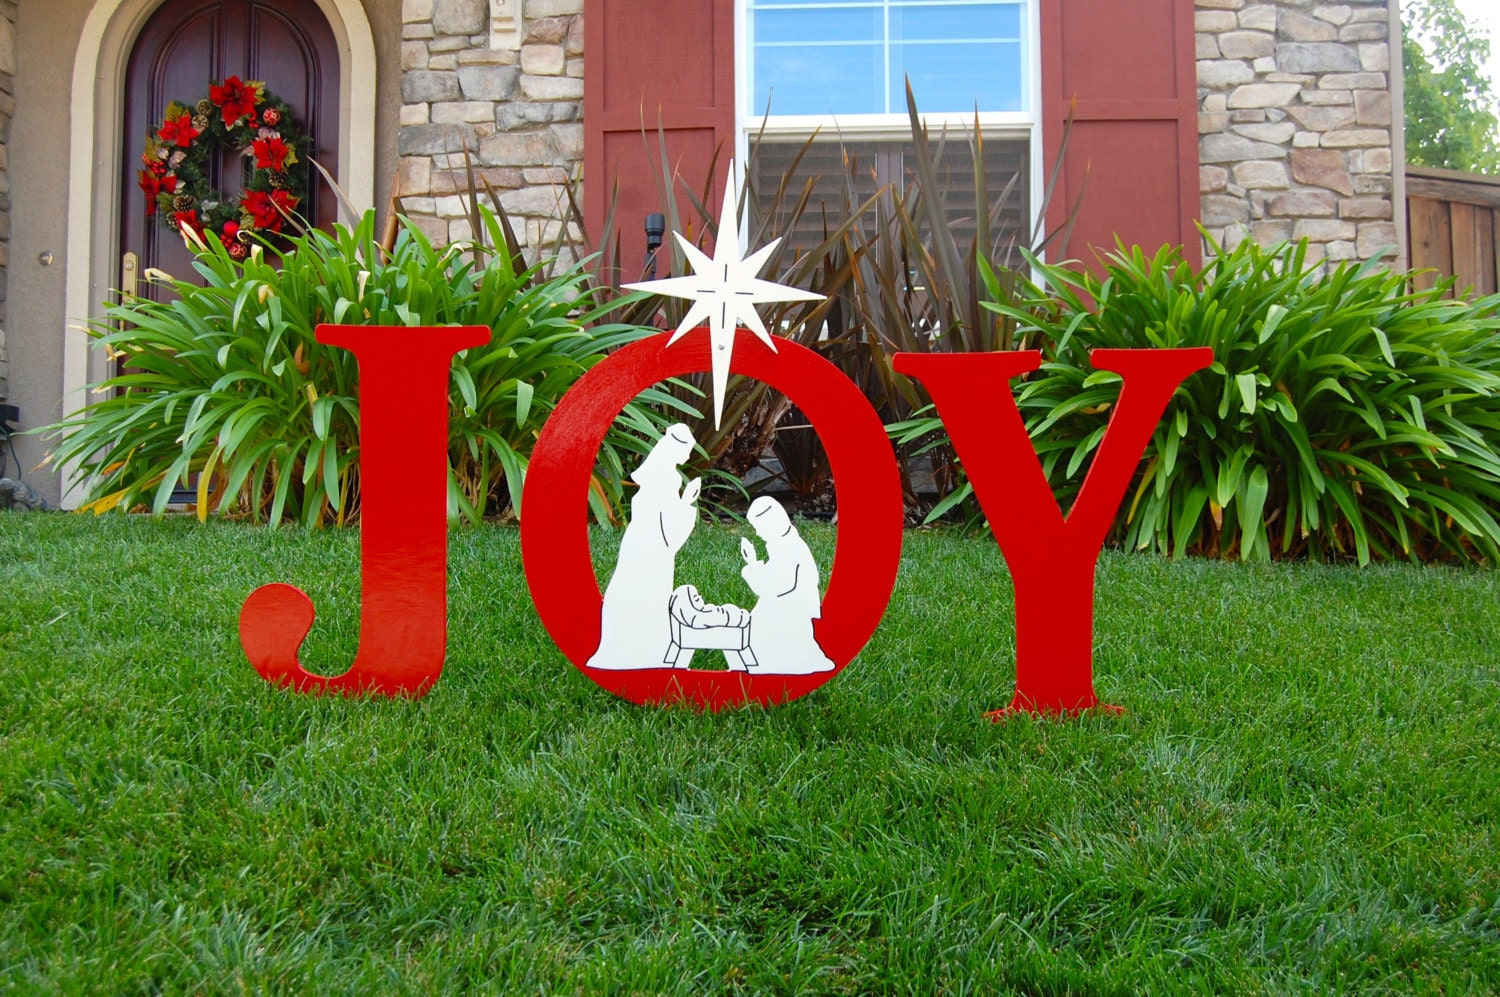 Joy nativity outdoor holiday christmas yard art sign for Holiday lawn decorations